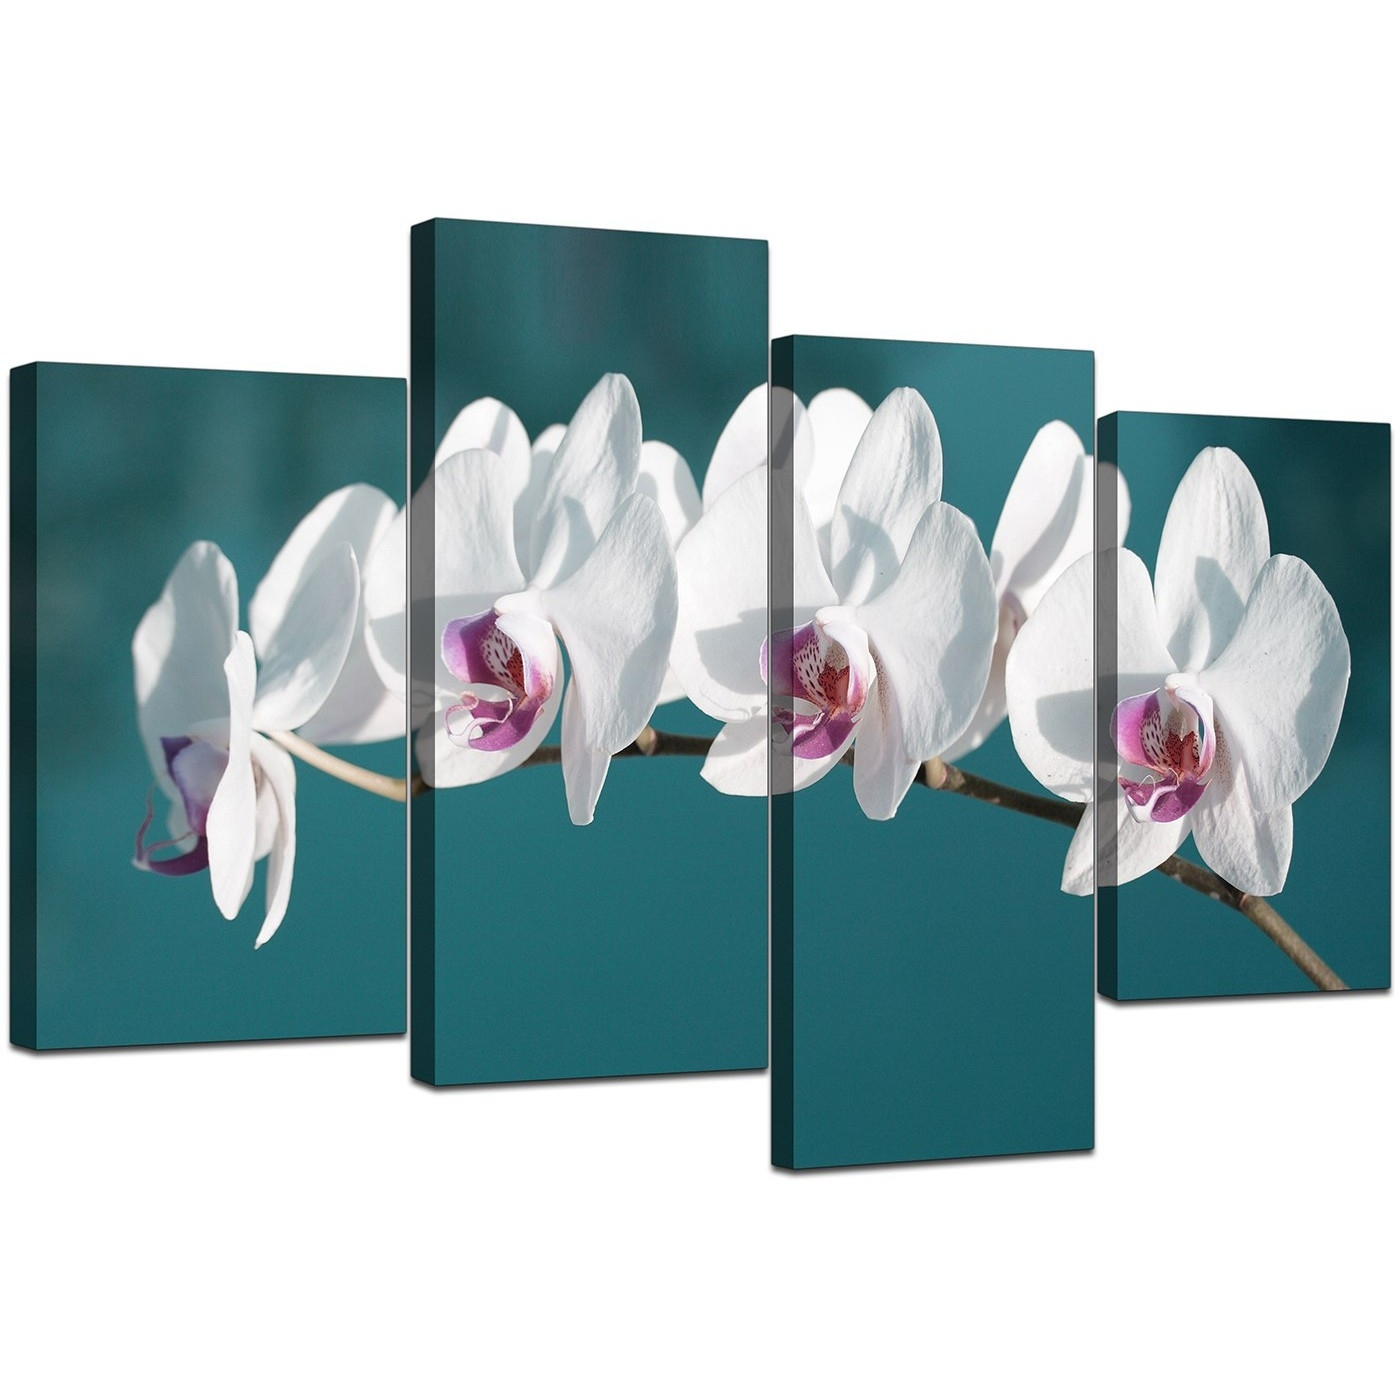 Canvas Wall Art Of White Orchids On Teal Background For Your Office Throughout Latest Orchid Canvas Wall Art (View 4 of 15)